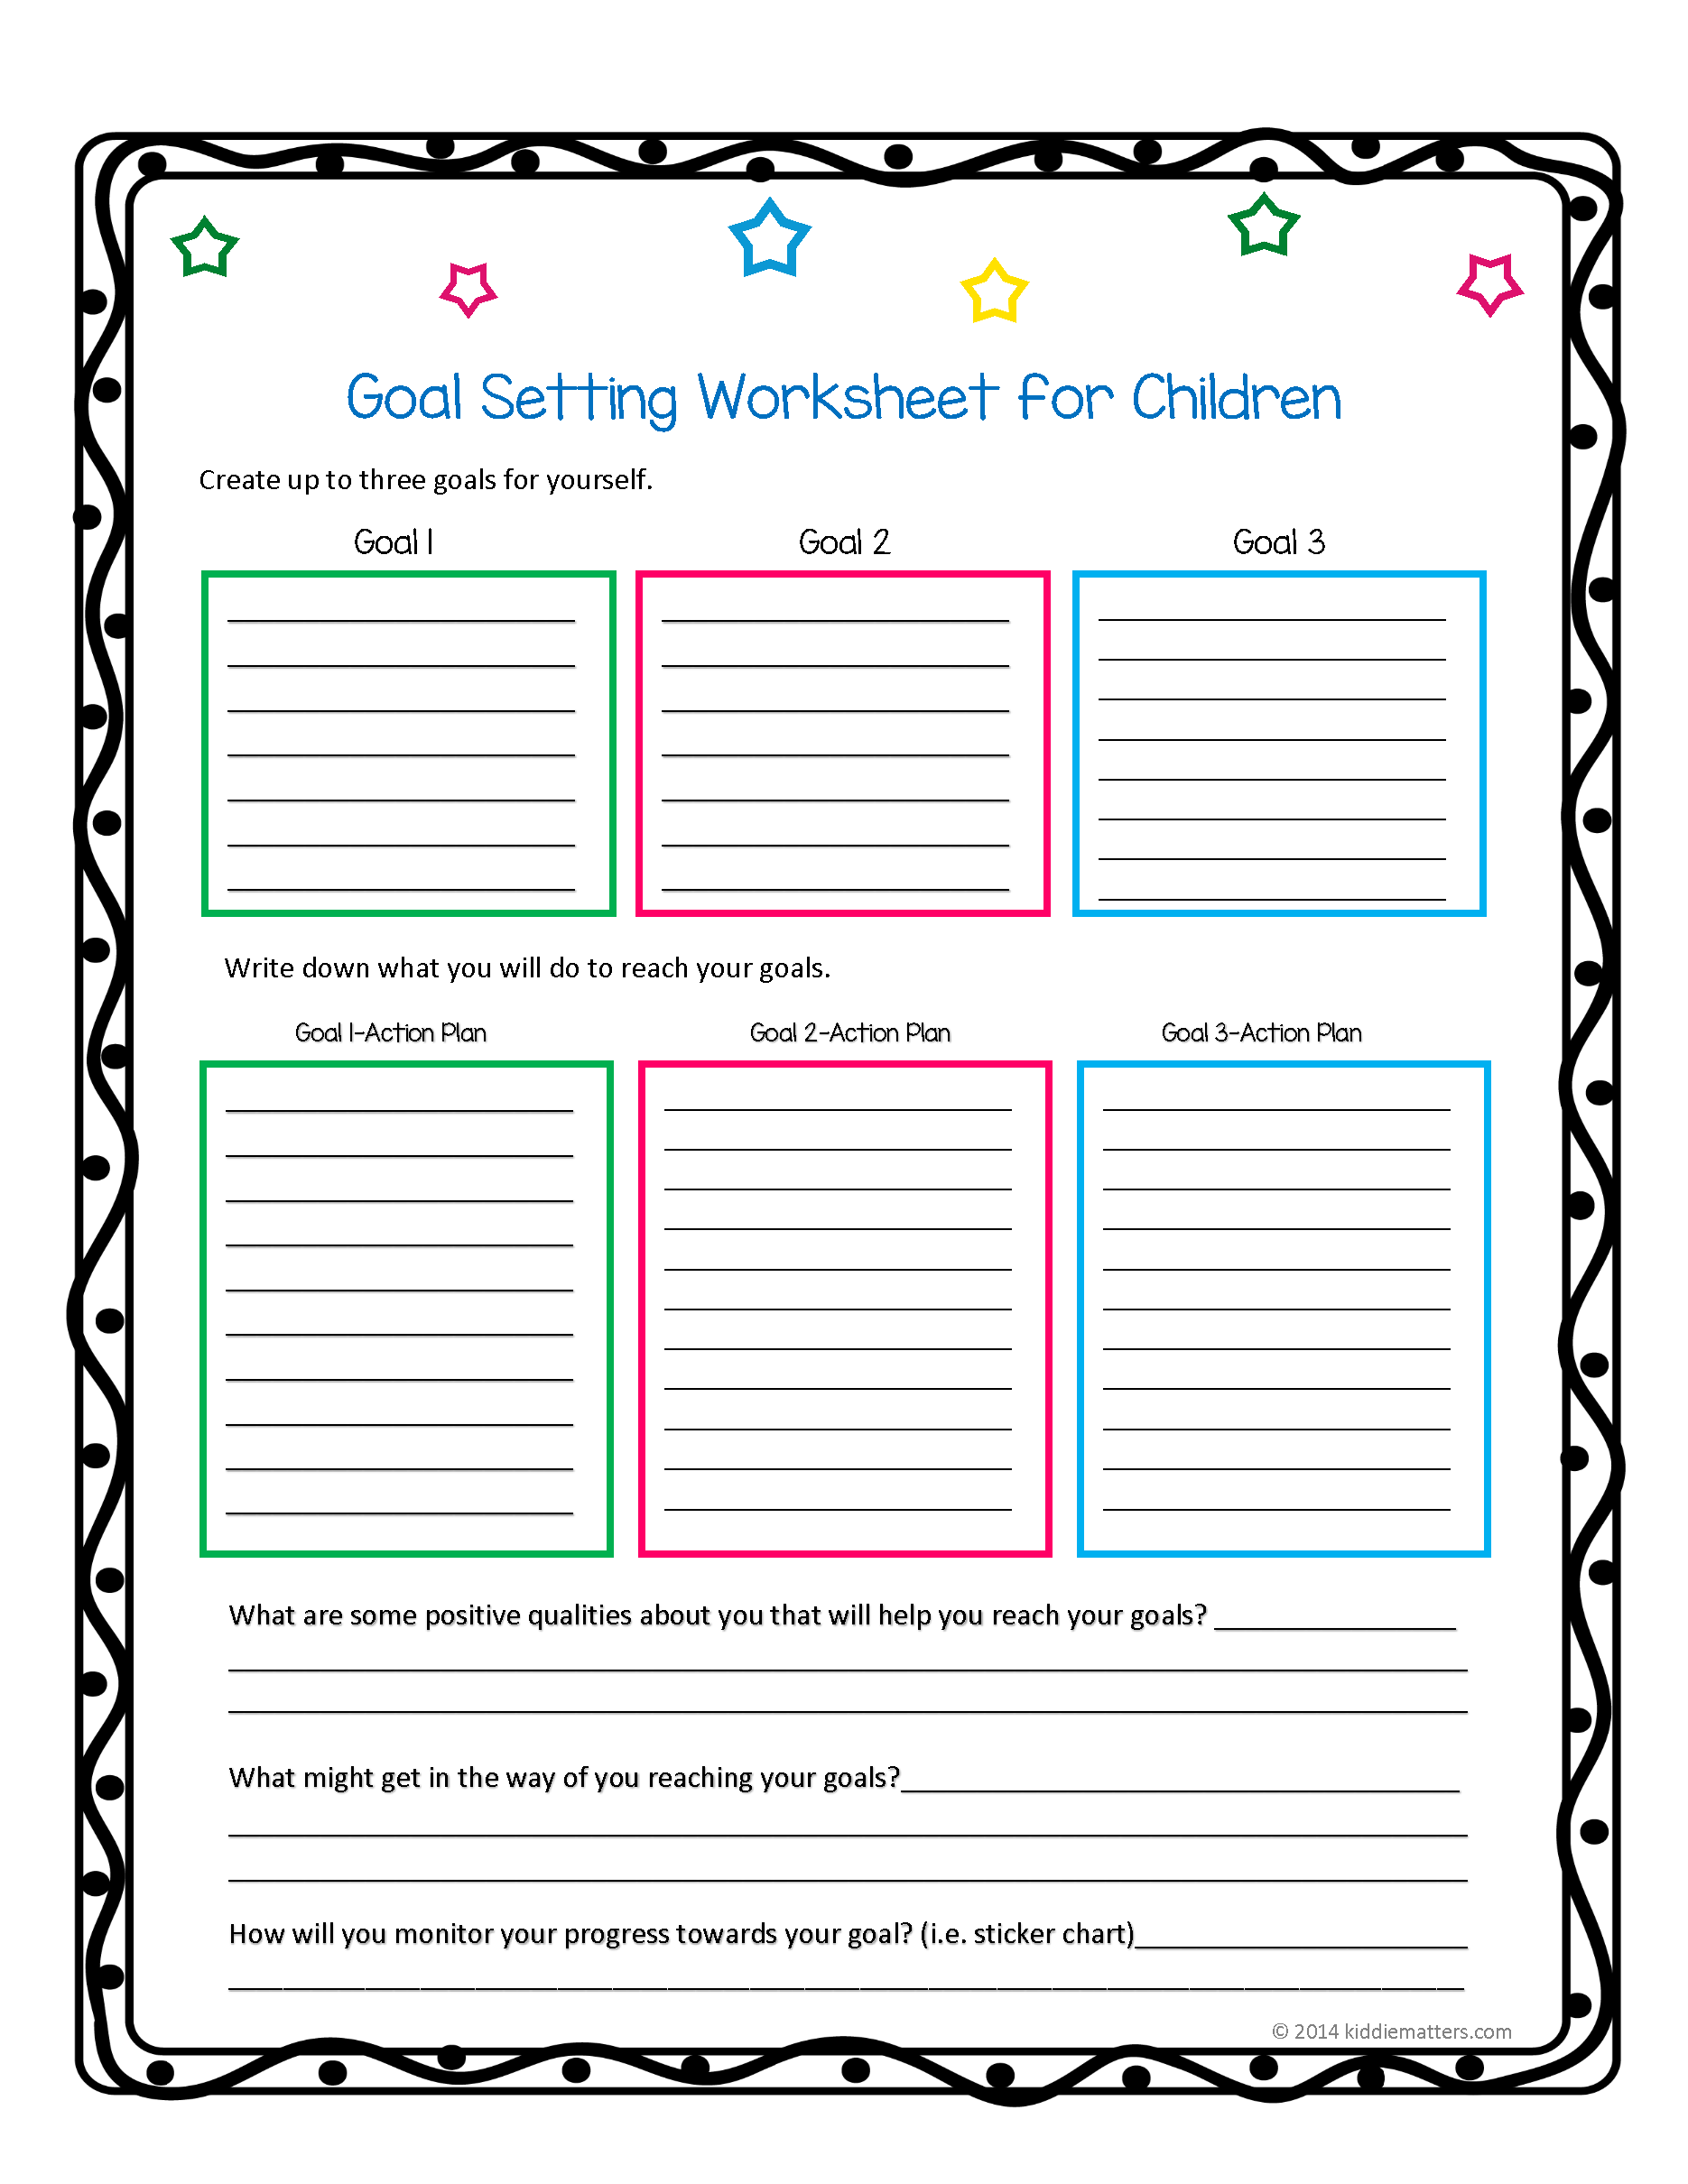 Worksheets Free Cbt Worksheets this worksheet and free printable helps children learn how to set goals create action plans